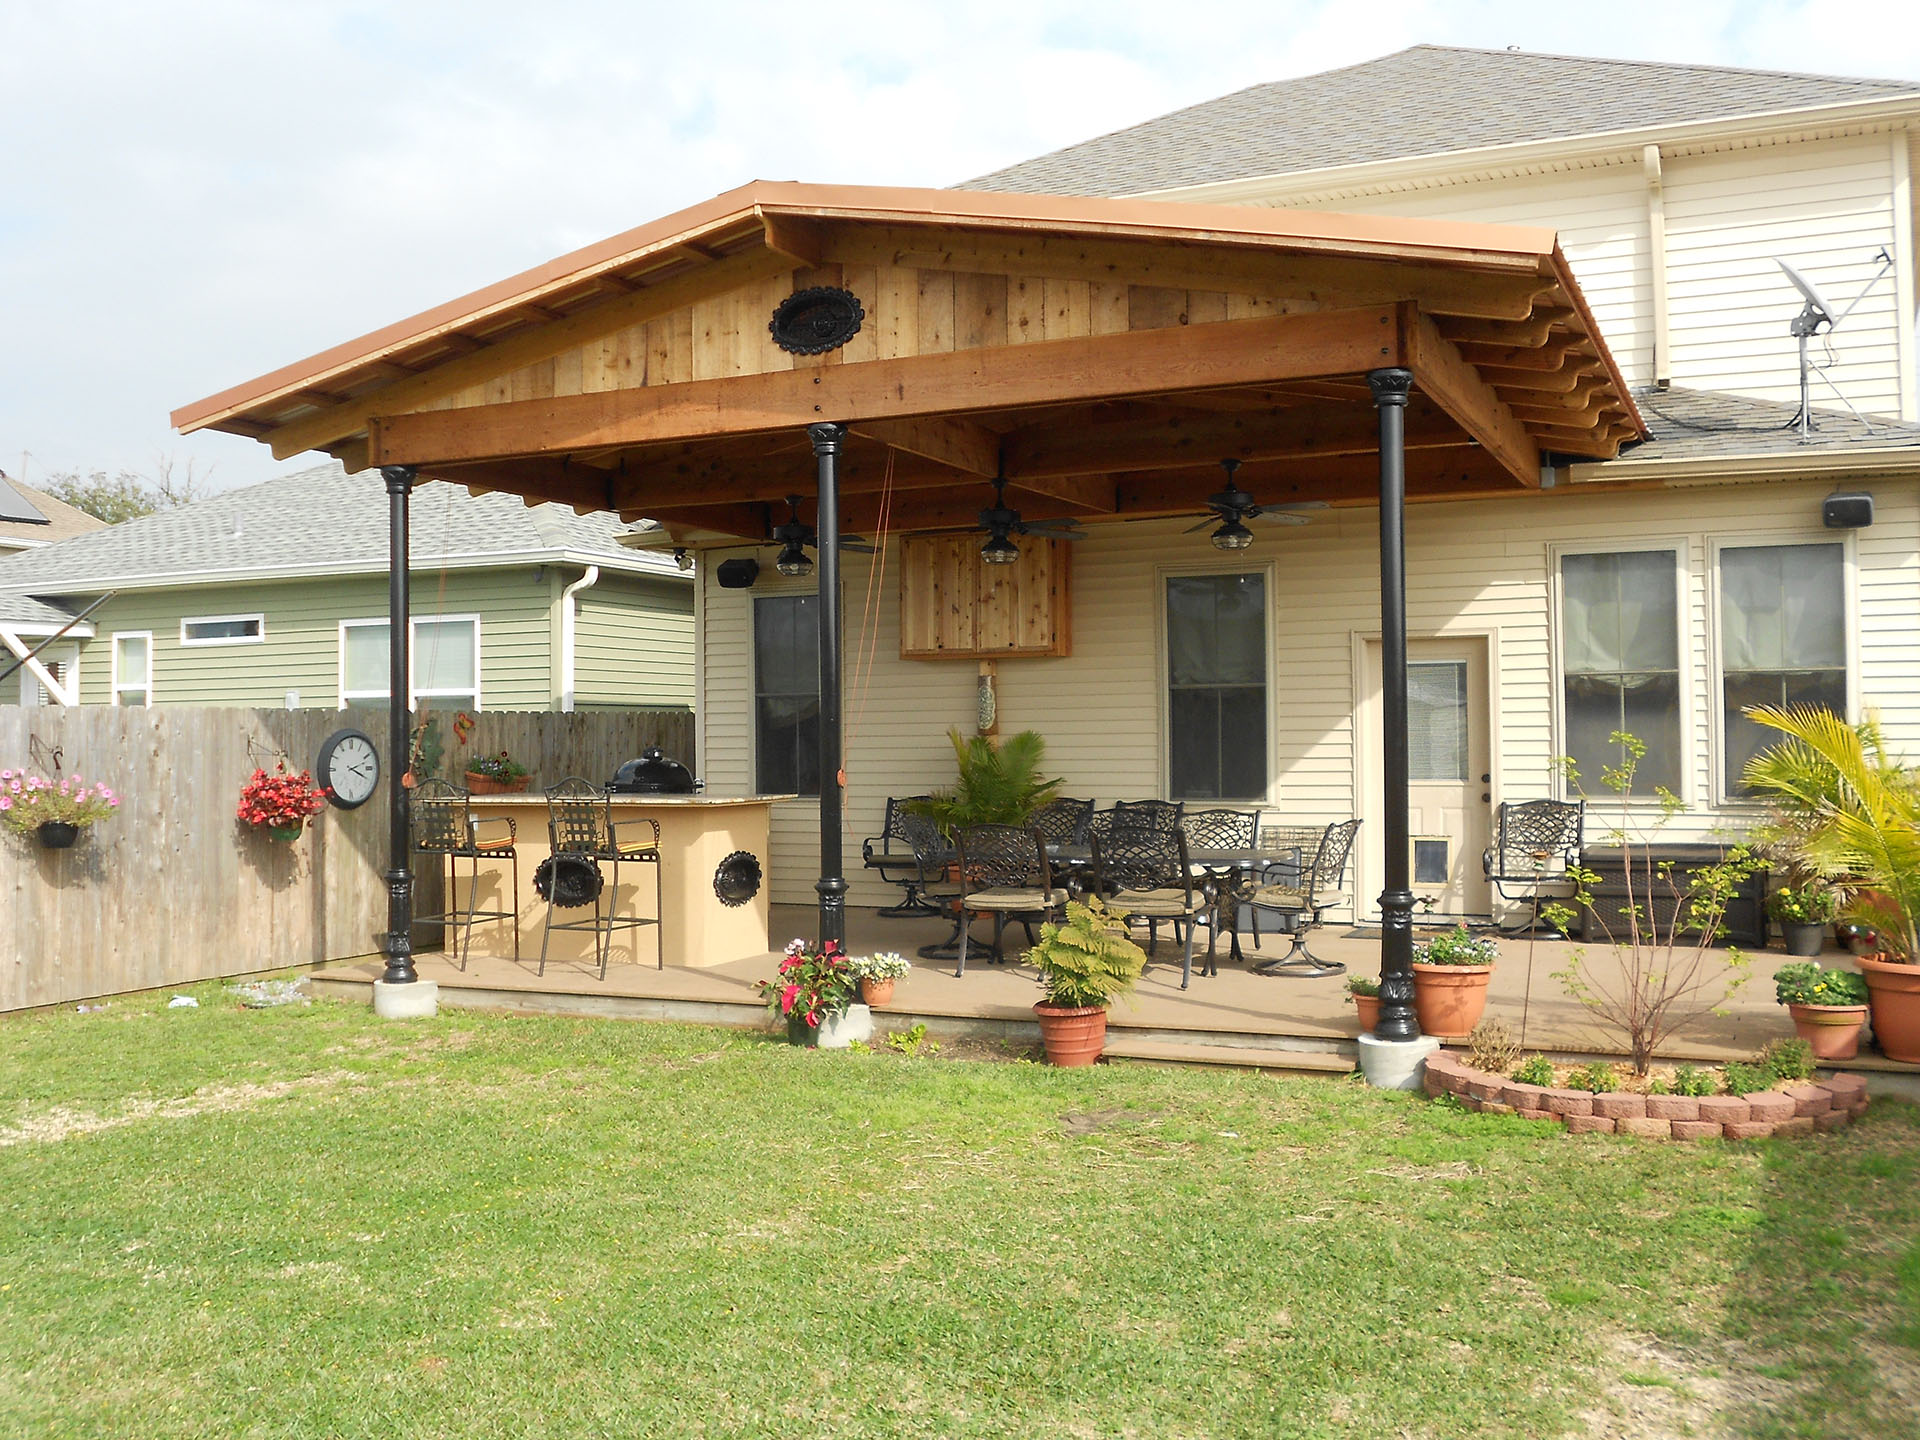 New Orleans Roof Covers   Outdoor Living   Custom Outdoor ... on Backyard Patio Extension Ideas id=79210